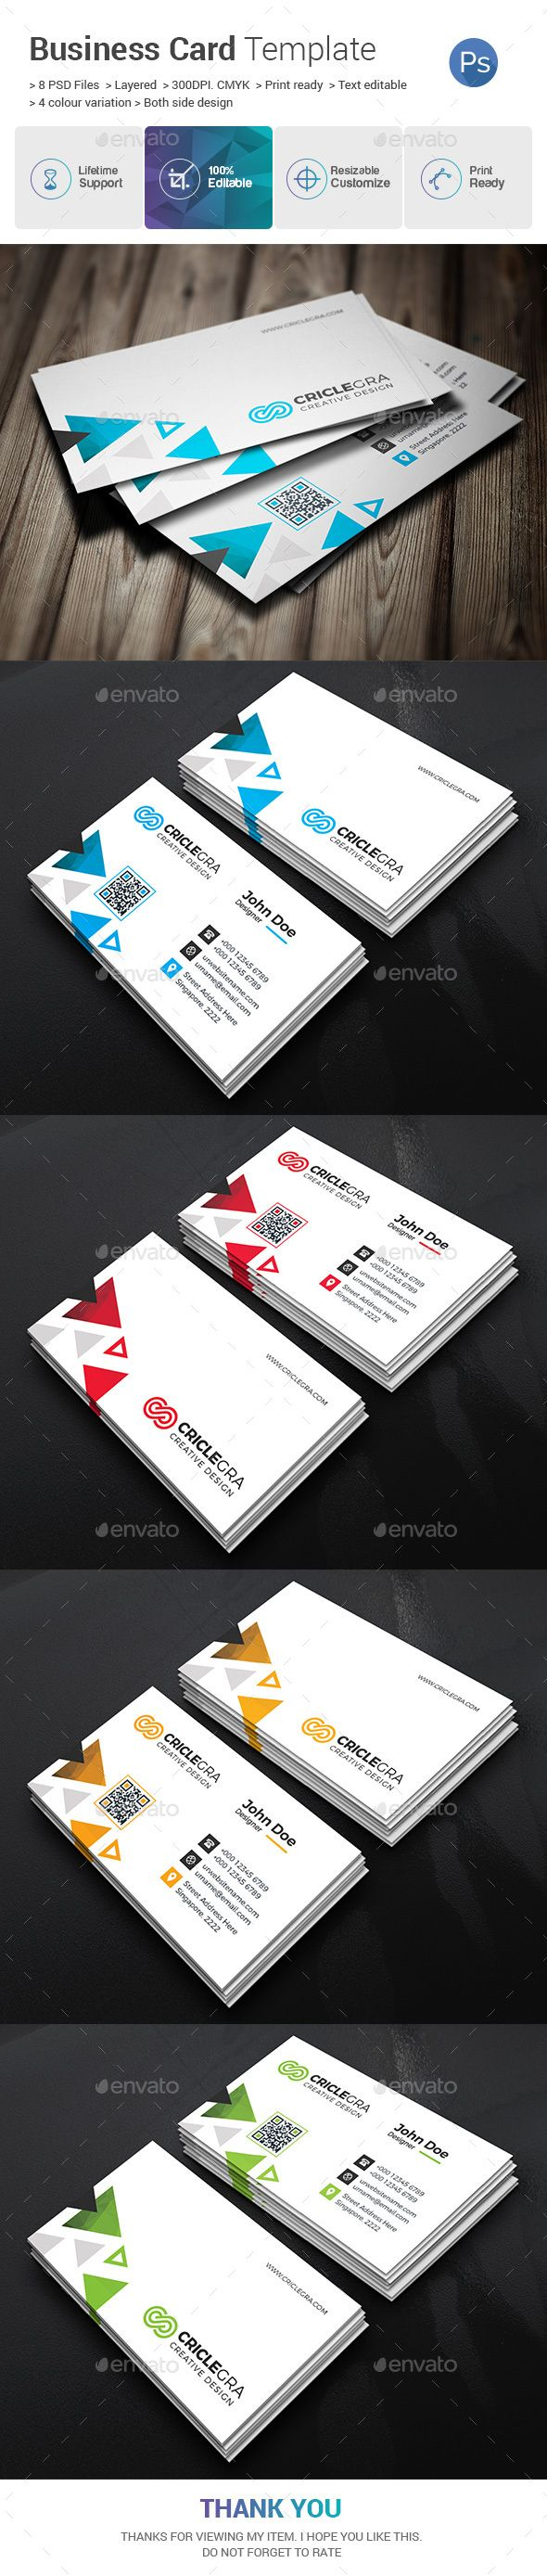 1361 best business card images on pinterest business card cheaphphosting Choice Image